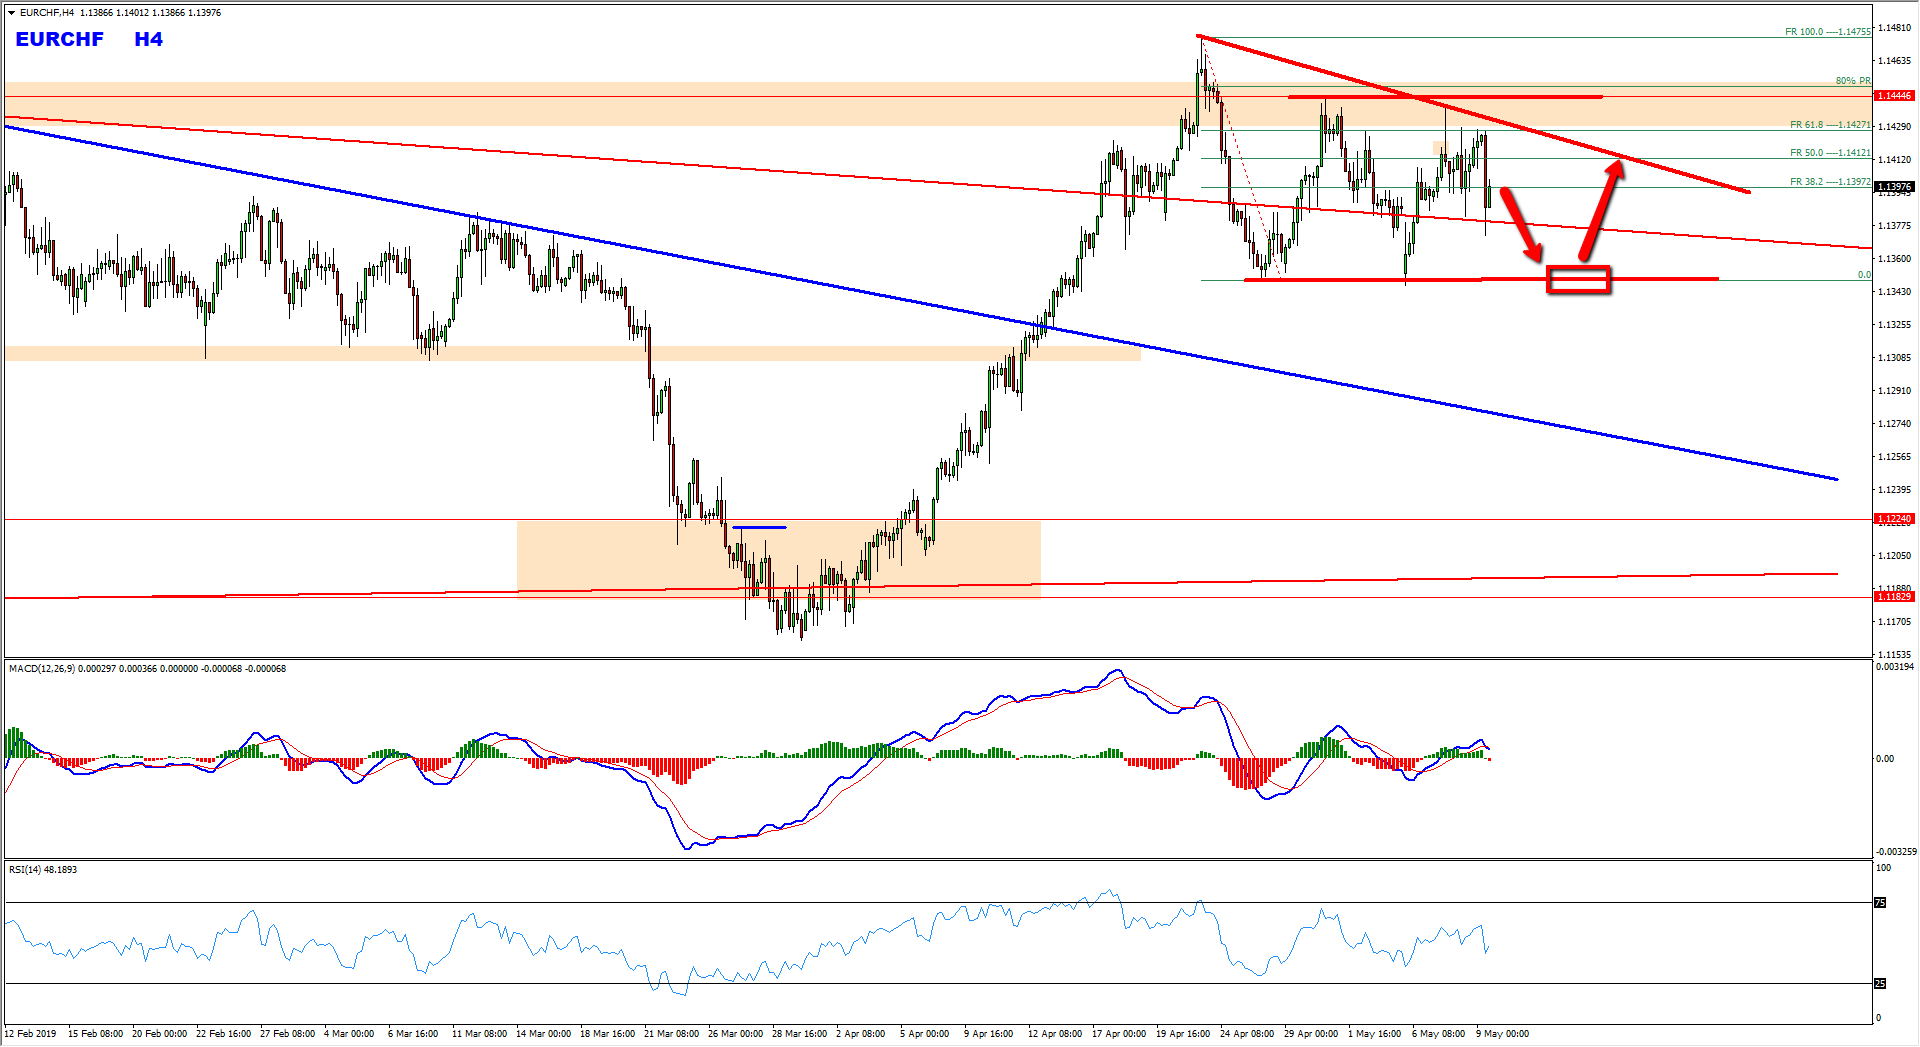 EURCHF Triangle Pattern Provides Buy Opportunity